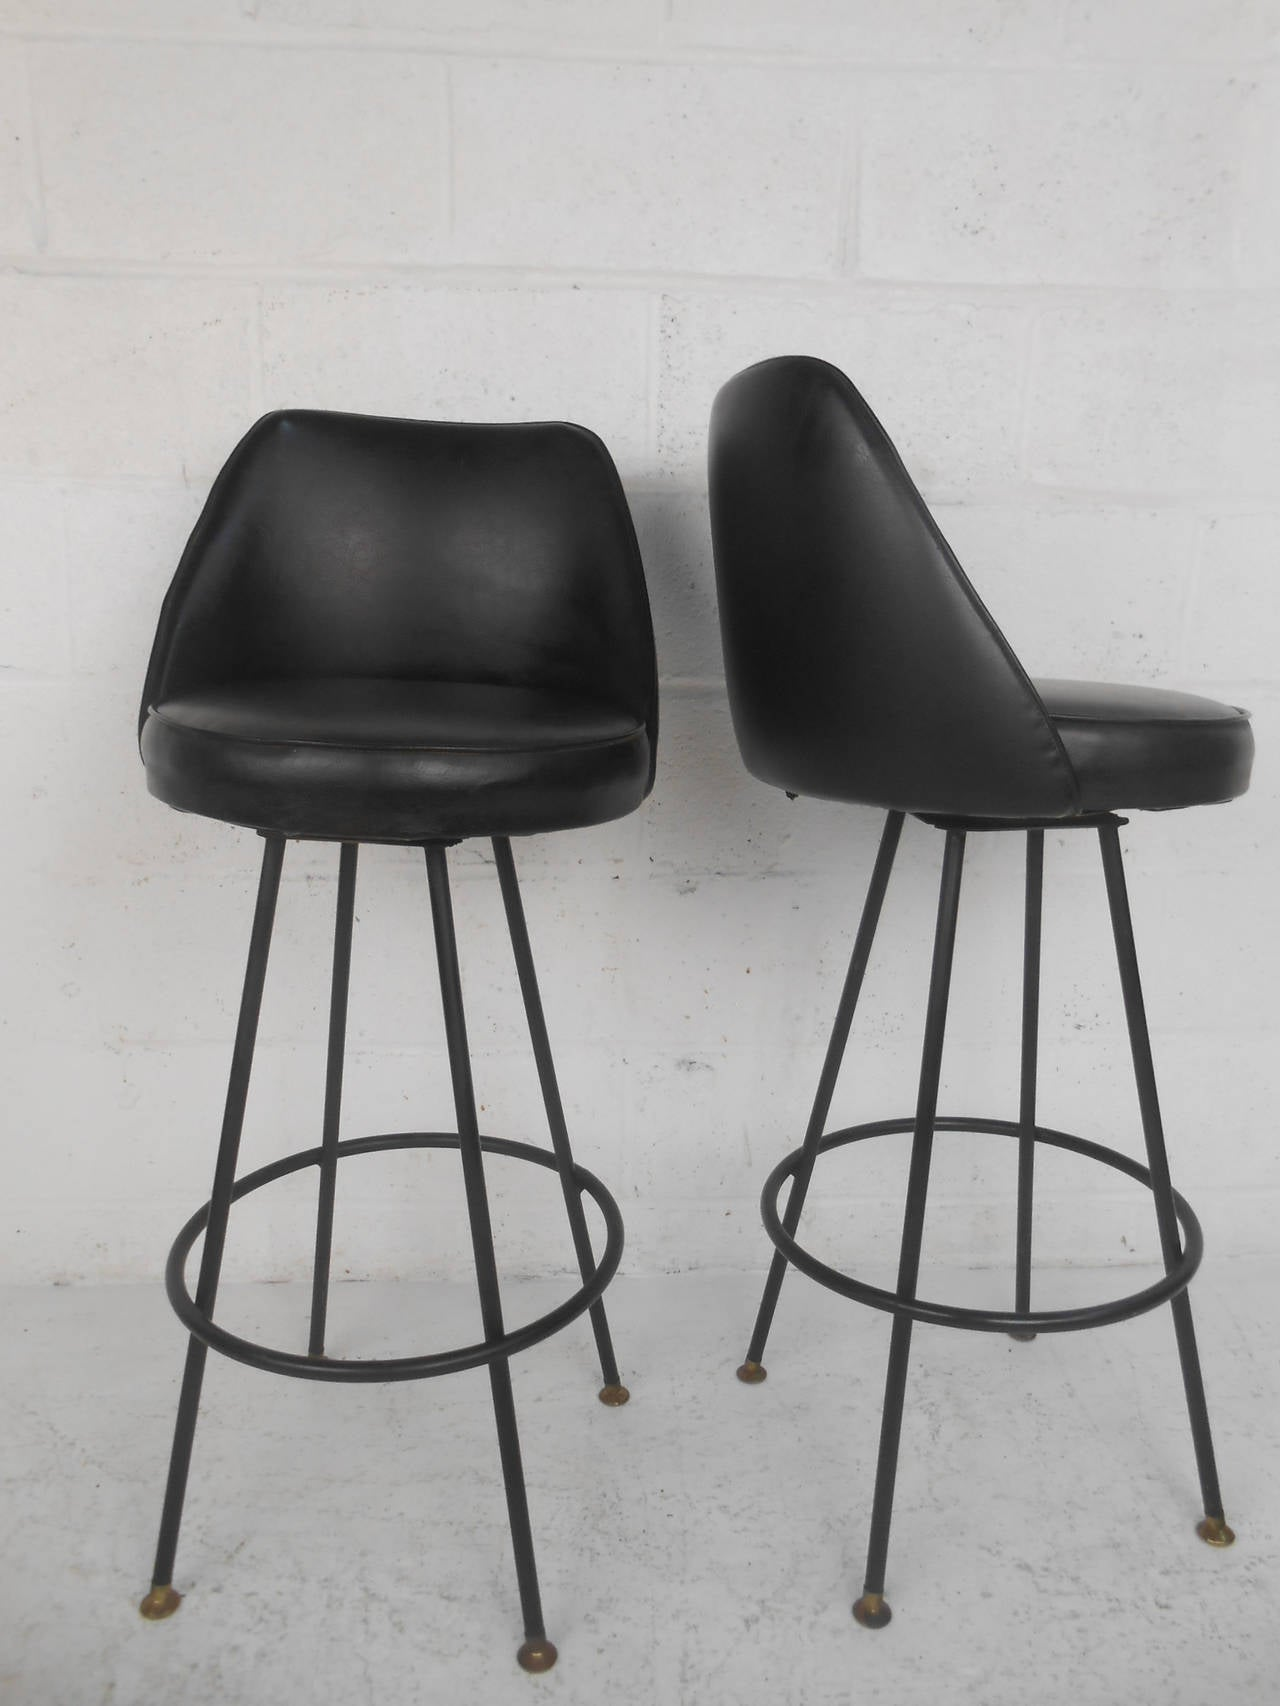 Four Vintage Swivel Bar Stools Featuring Vinyl Upholstered Seats Sy Metal Bases And Br Ced